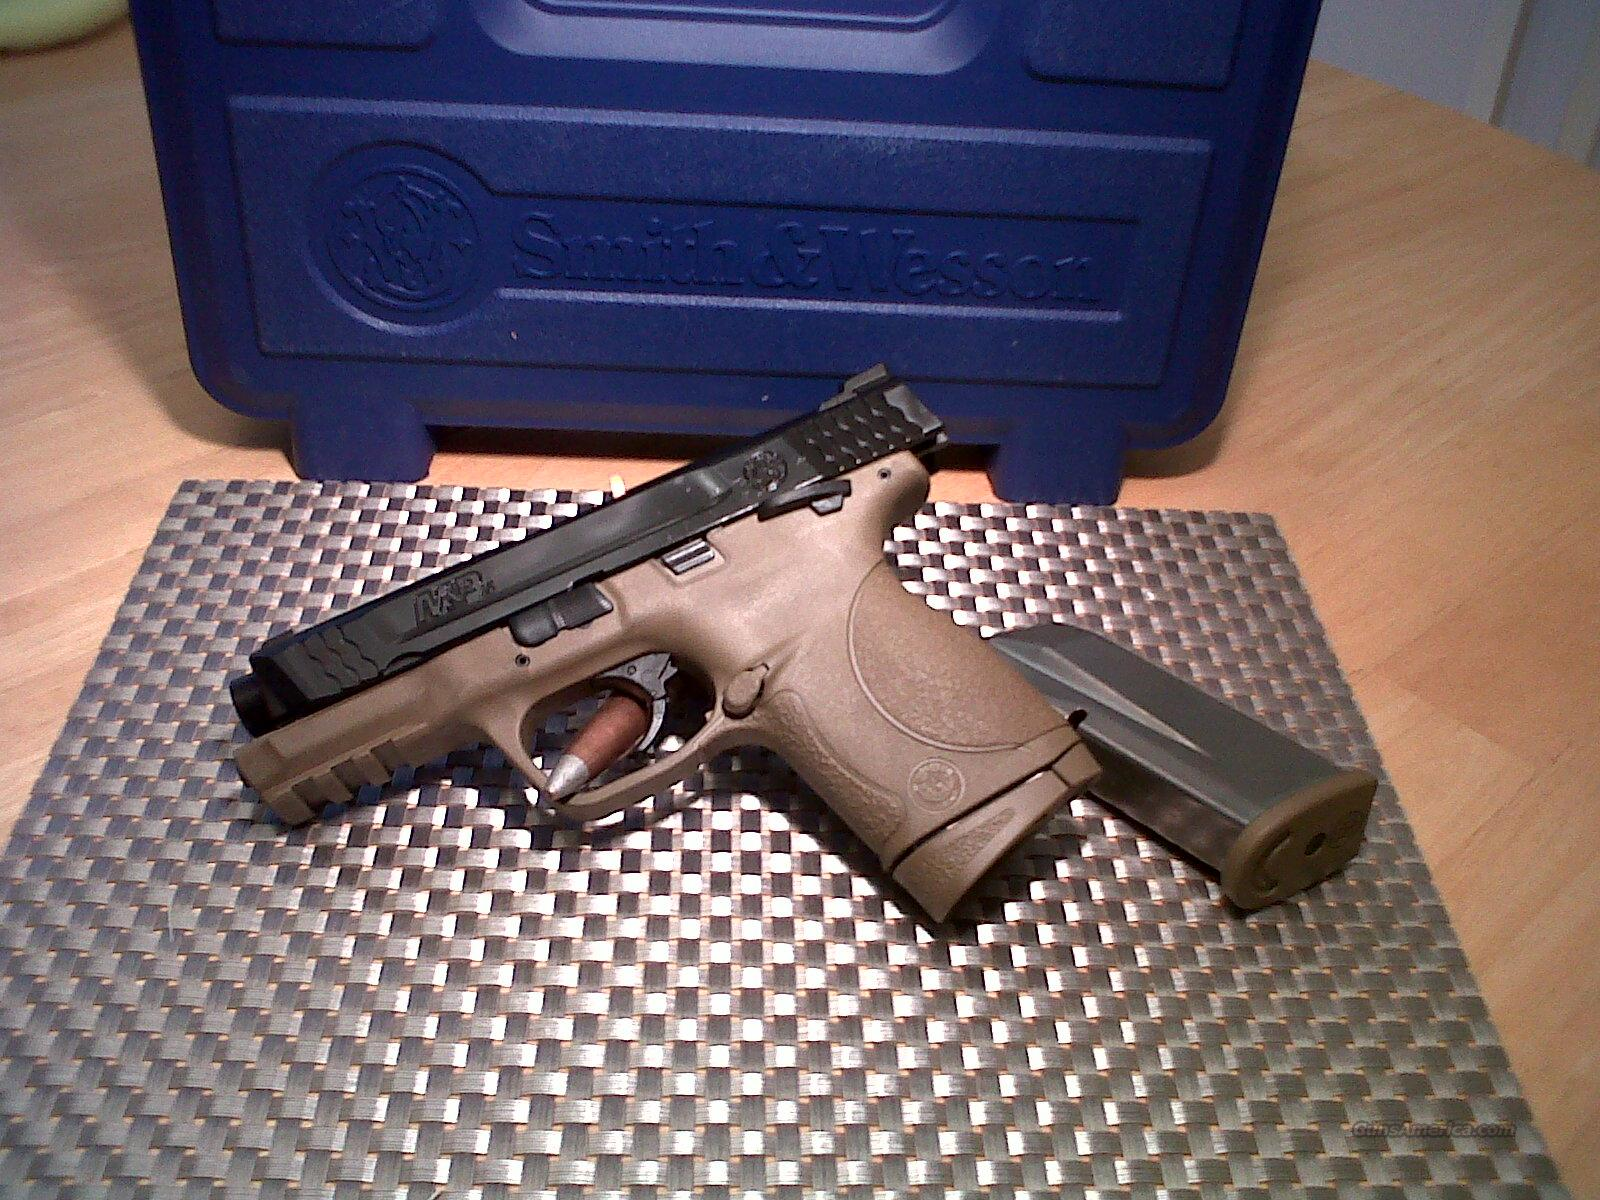 "Smith & Wesson M&P45C SKU 109158 Dark Earth Brown frame Smith & Wesson M&P45c - Compact Size, Manual Thumb Safety 4"" barrel  Guns > Pistols > Smith & Wesson Pistols - Autos > Polymer Frame"